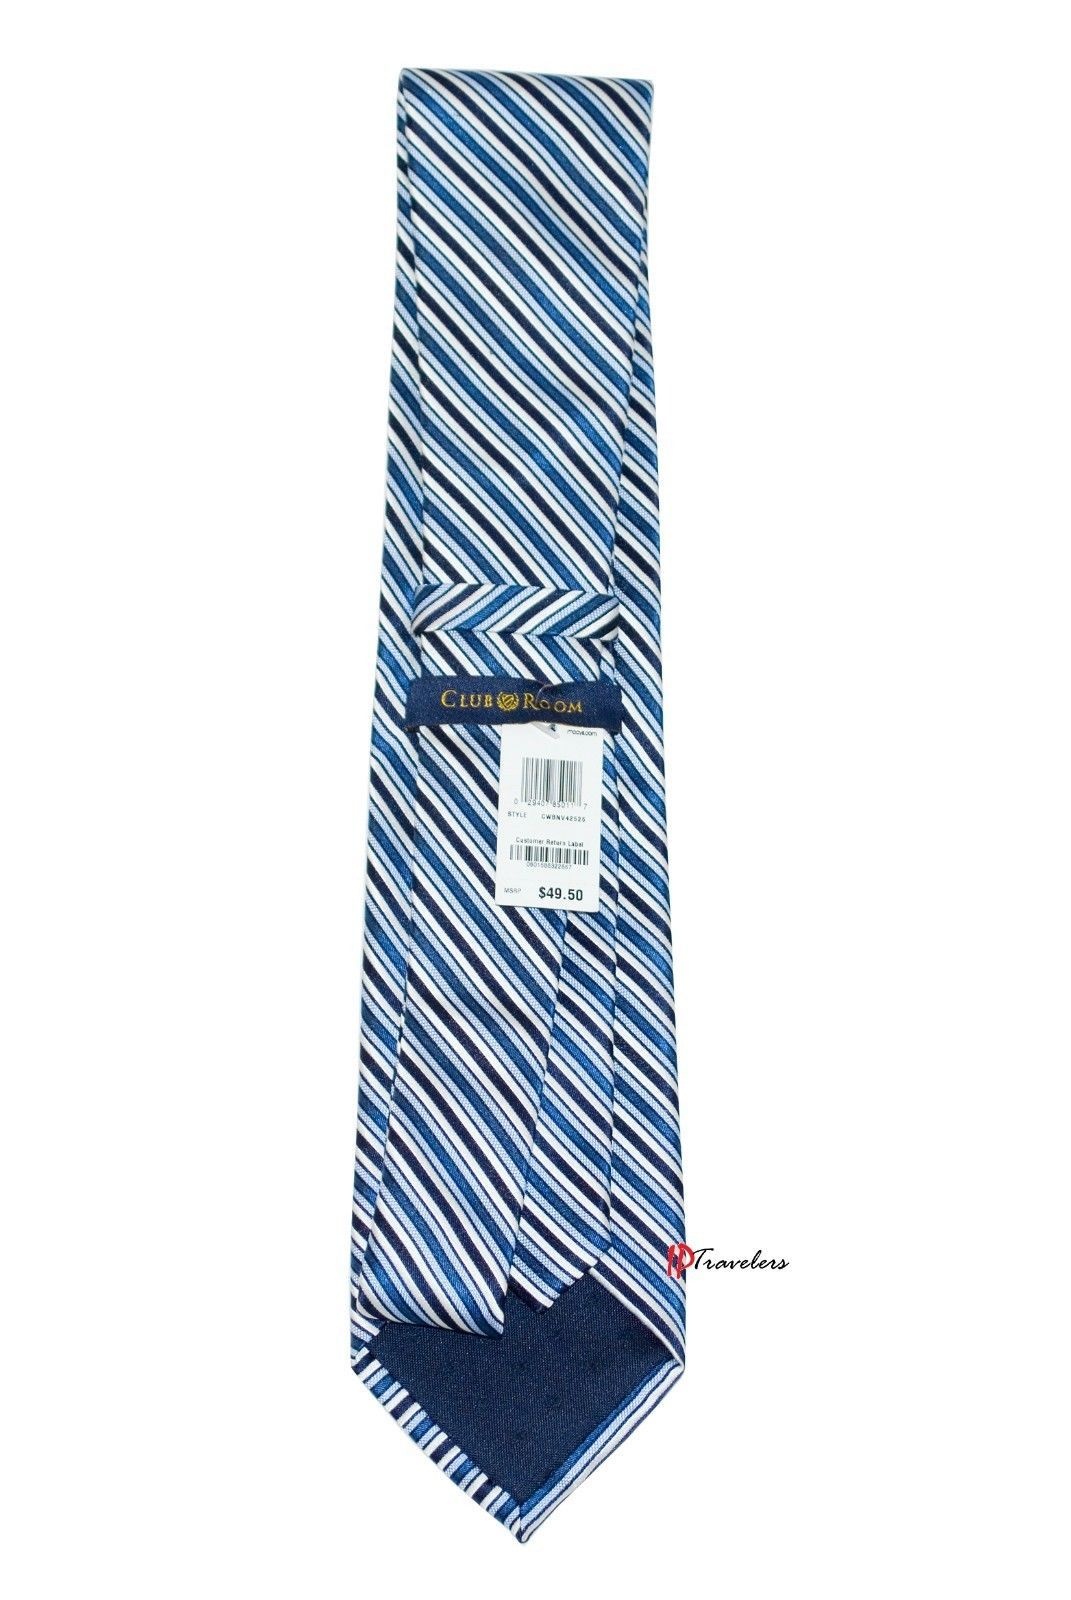 Club Room Estate Men's Neck Tie Blue and White Stripes 100% Silk $49.50